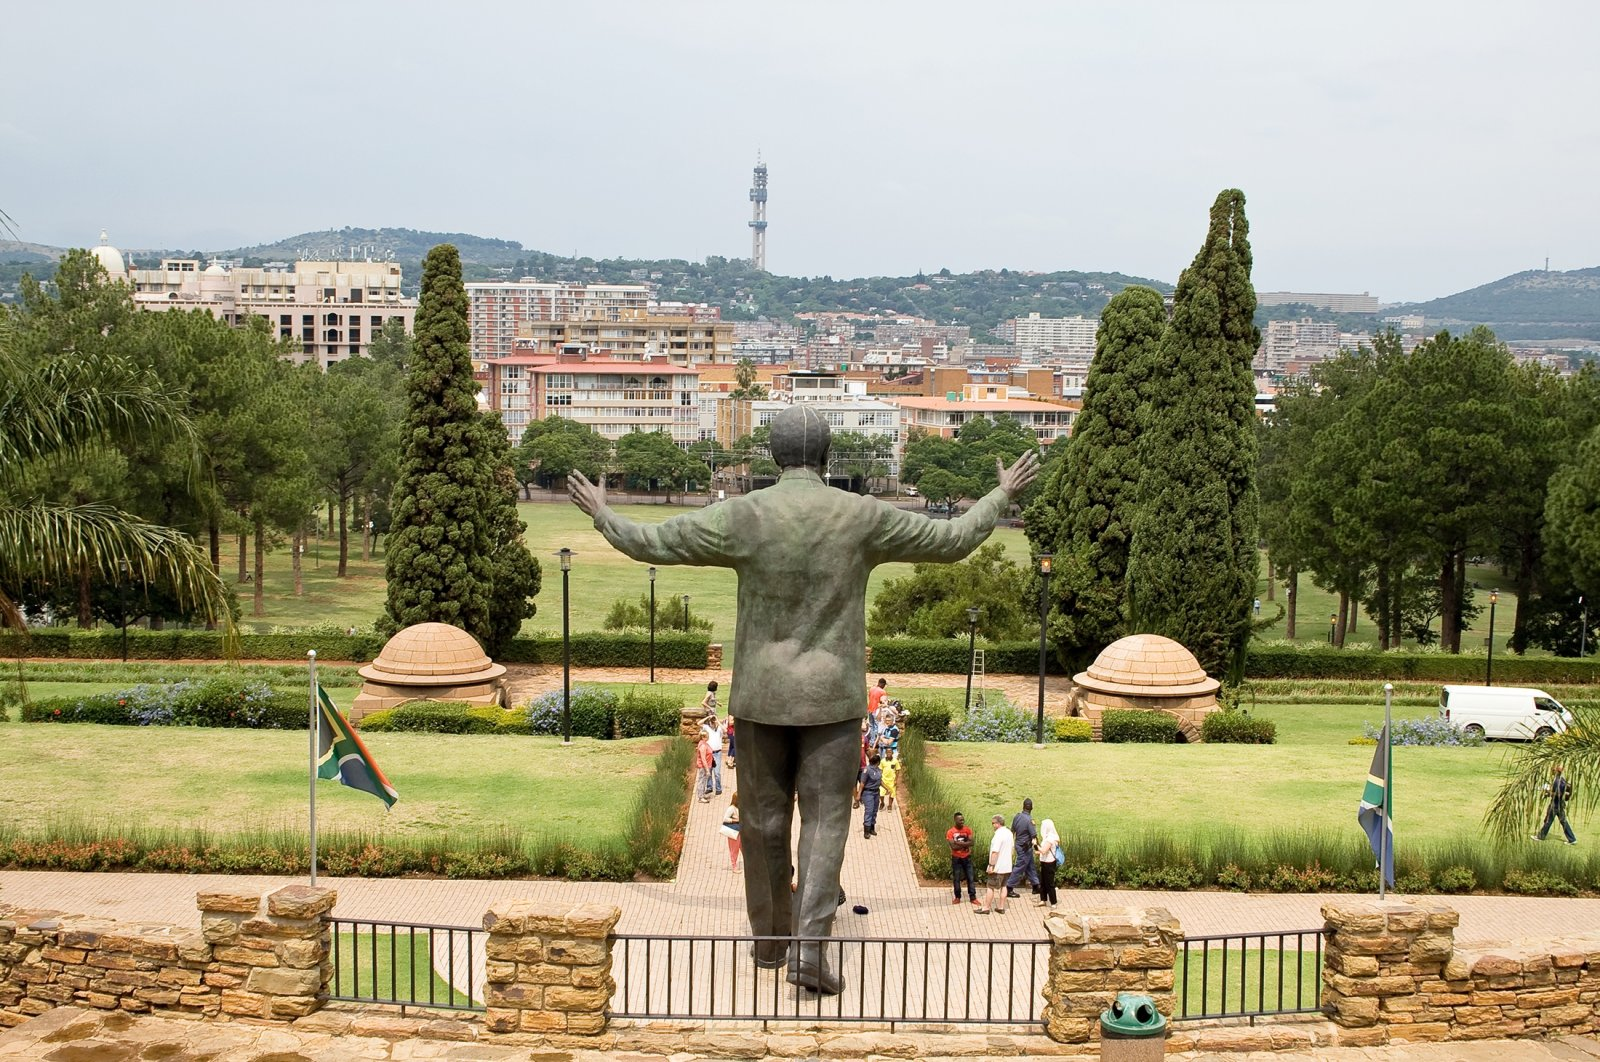 People take images of the nine-meter-tall bronze statue of former president Nelson Mandela of South Africa at the Union buildings in Pretoria, South Africa, March 22, 2015. (Shutterstock Photo)